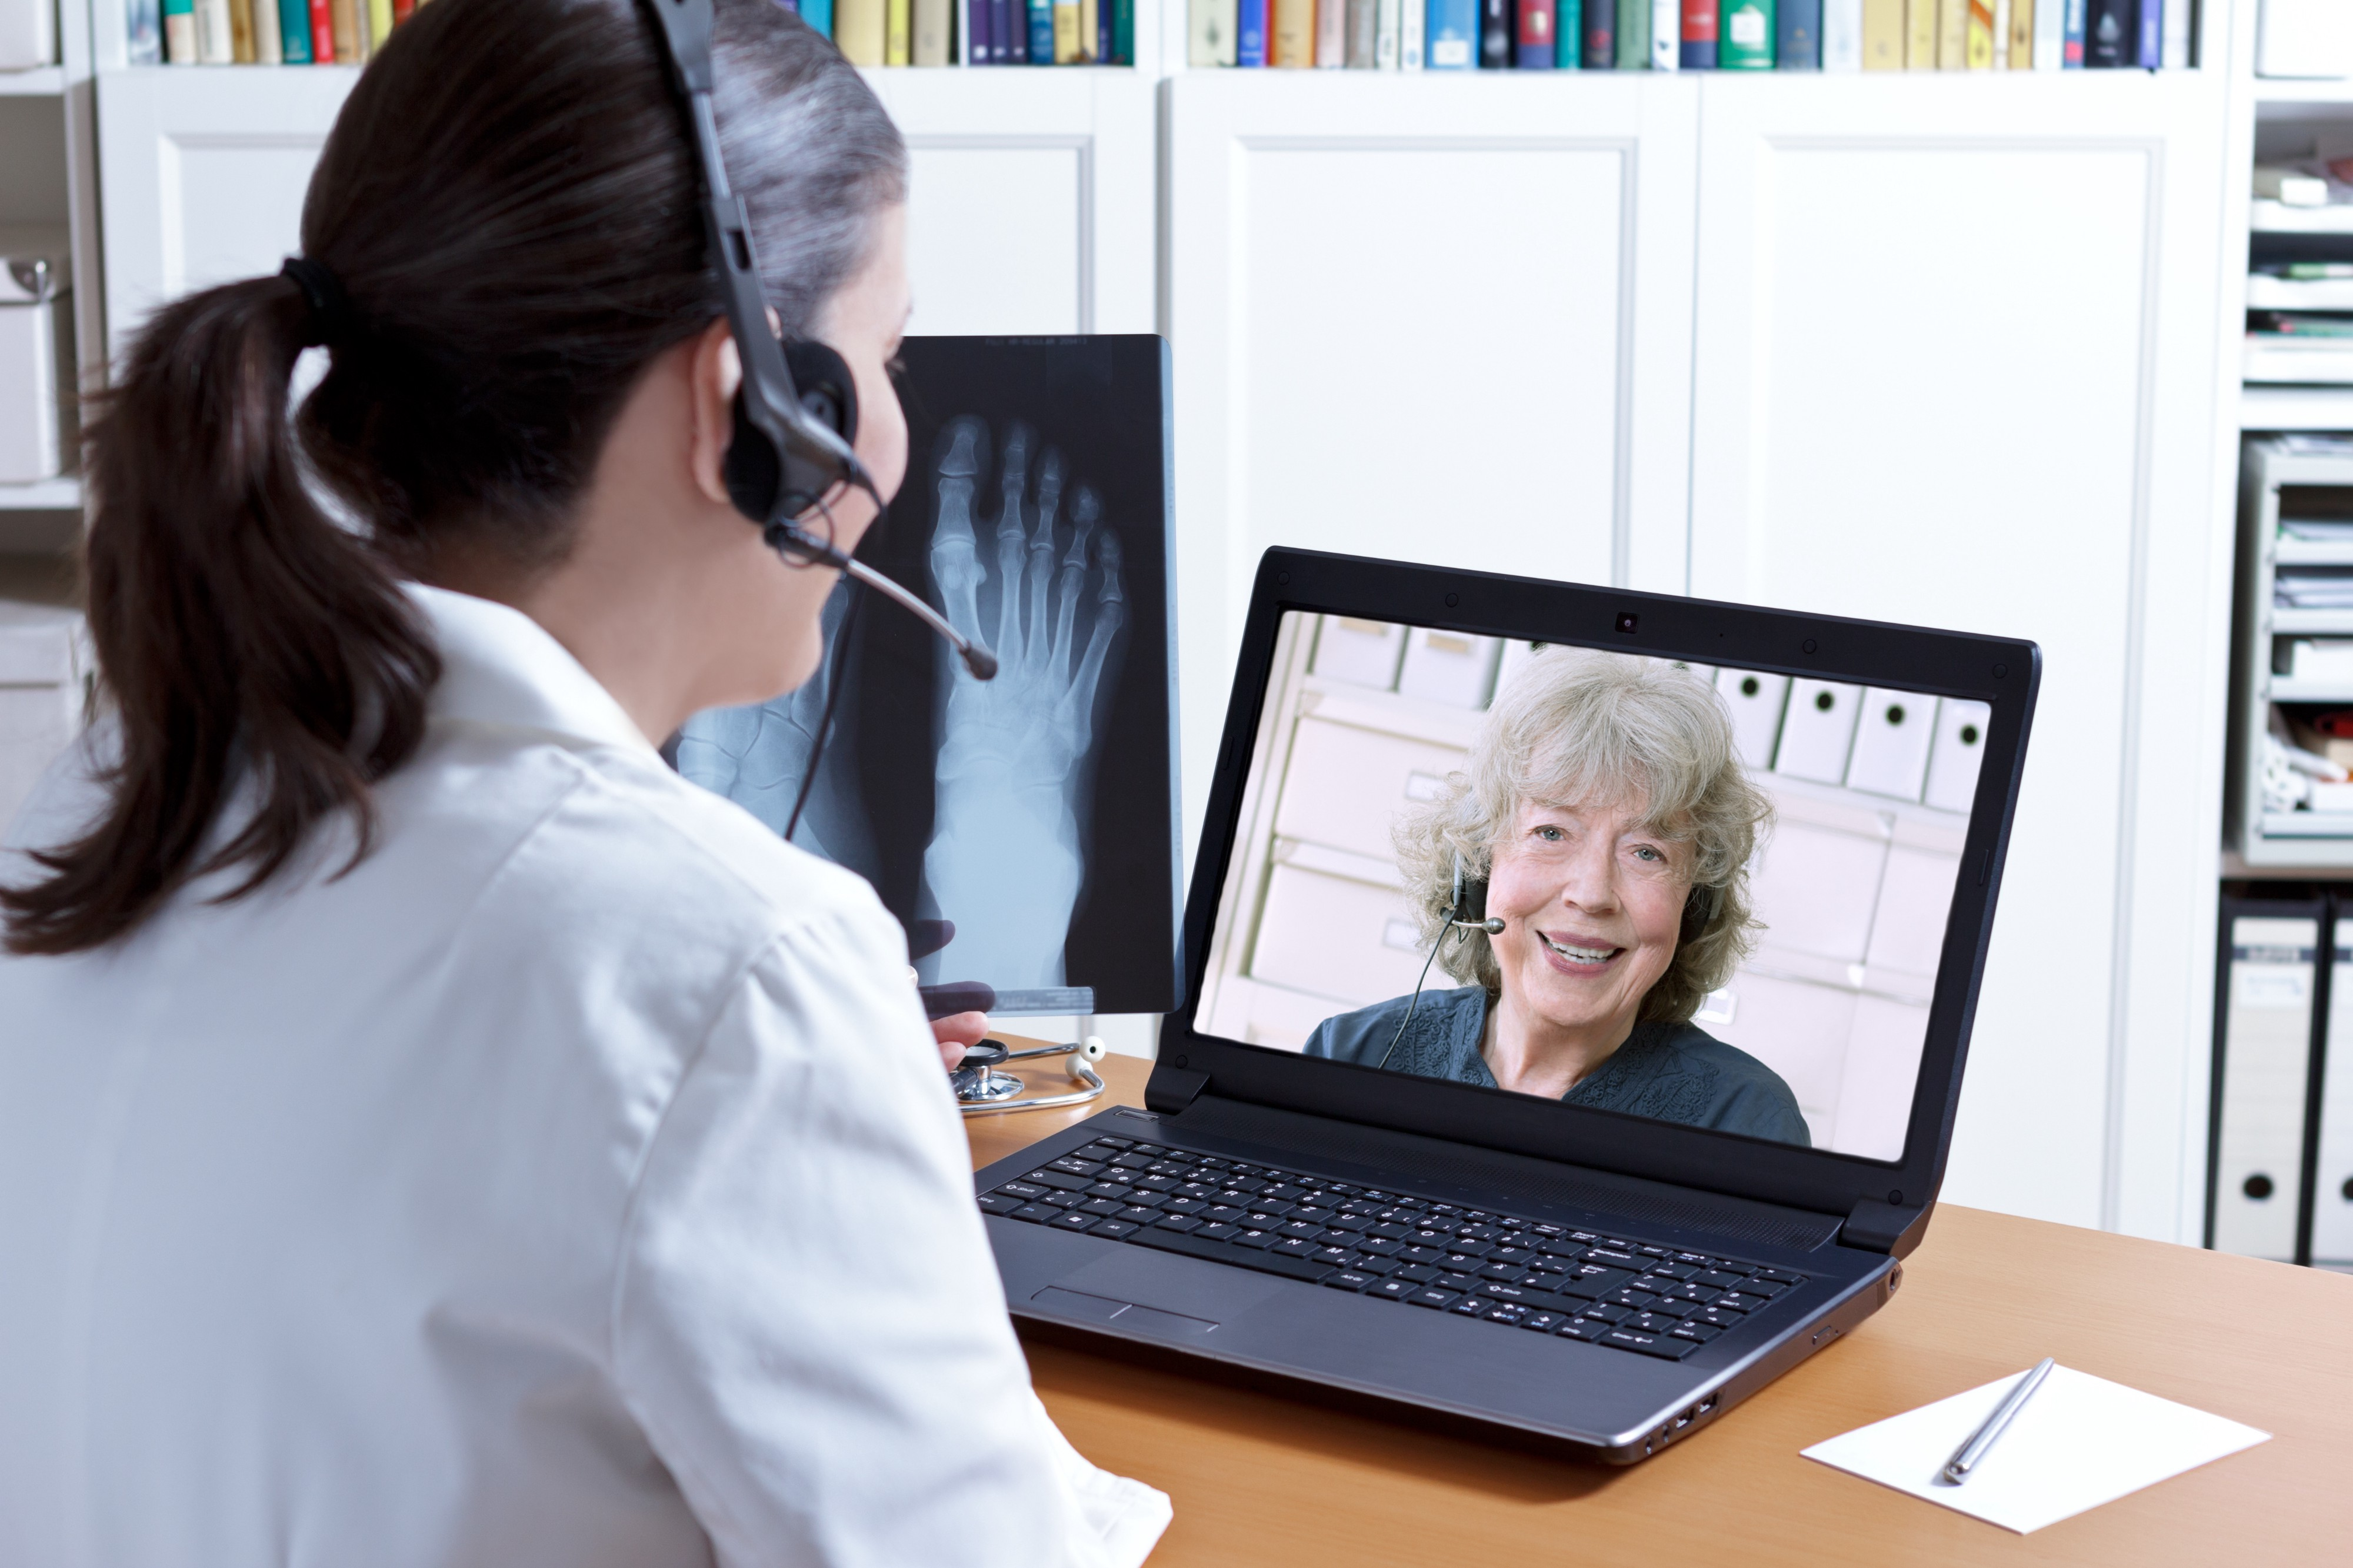 Doctor chatting with patient on laptop